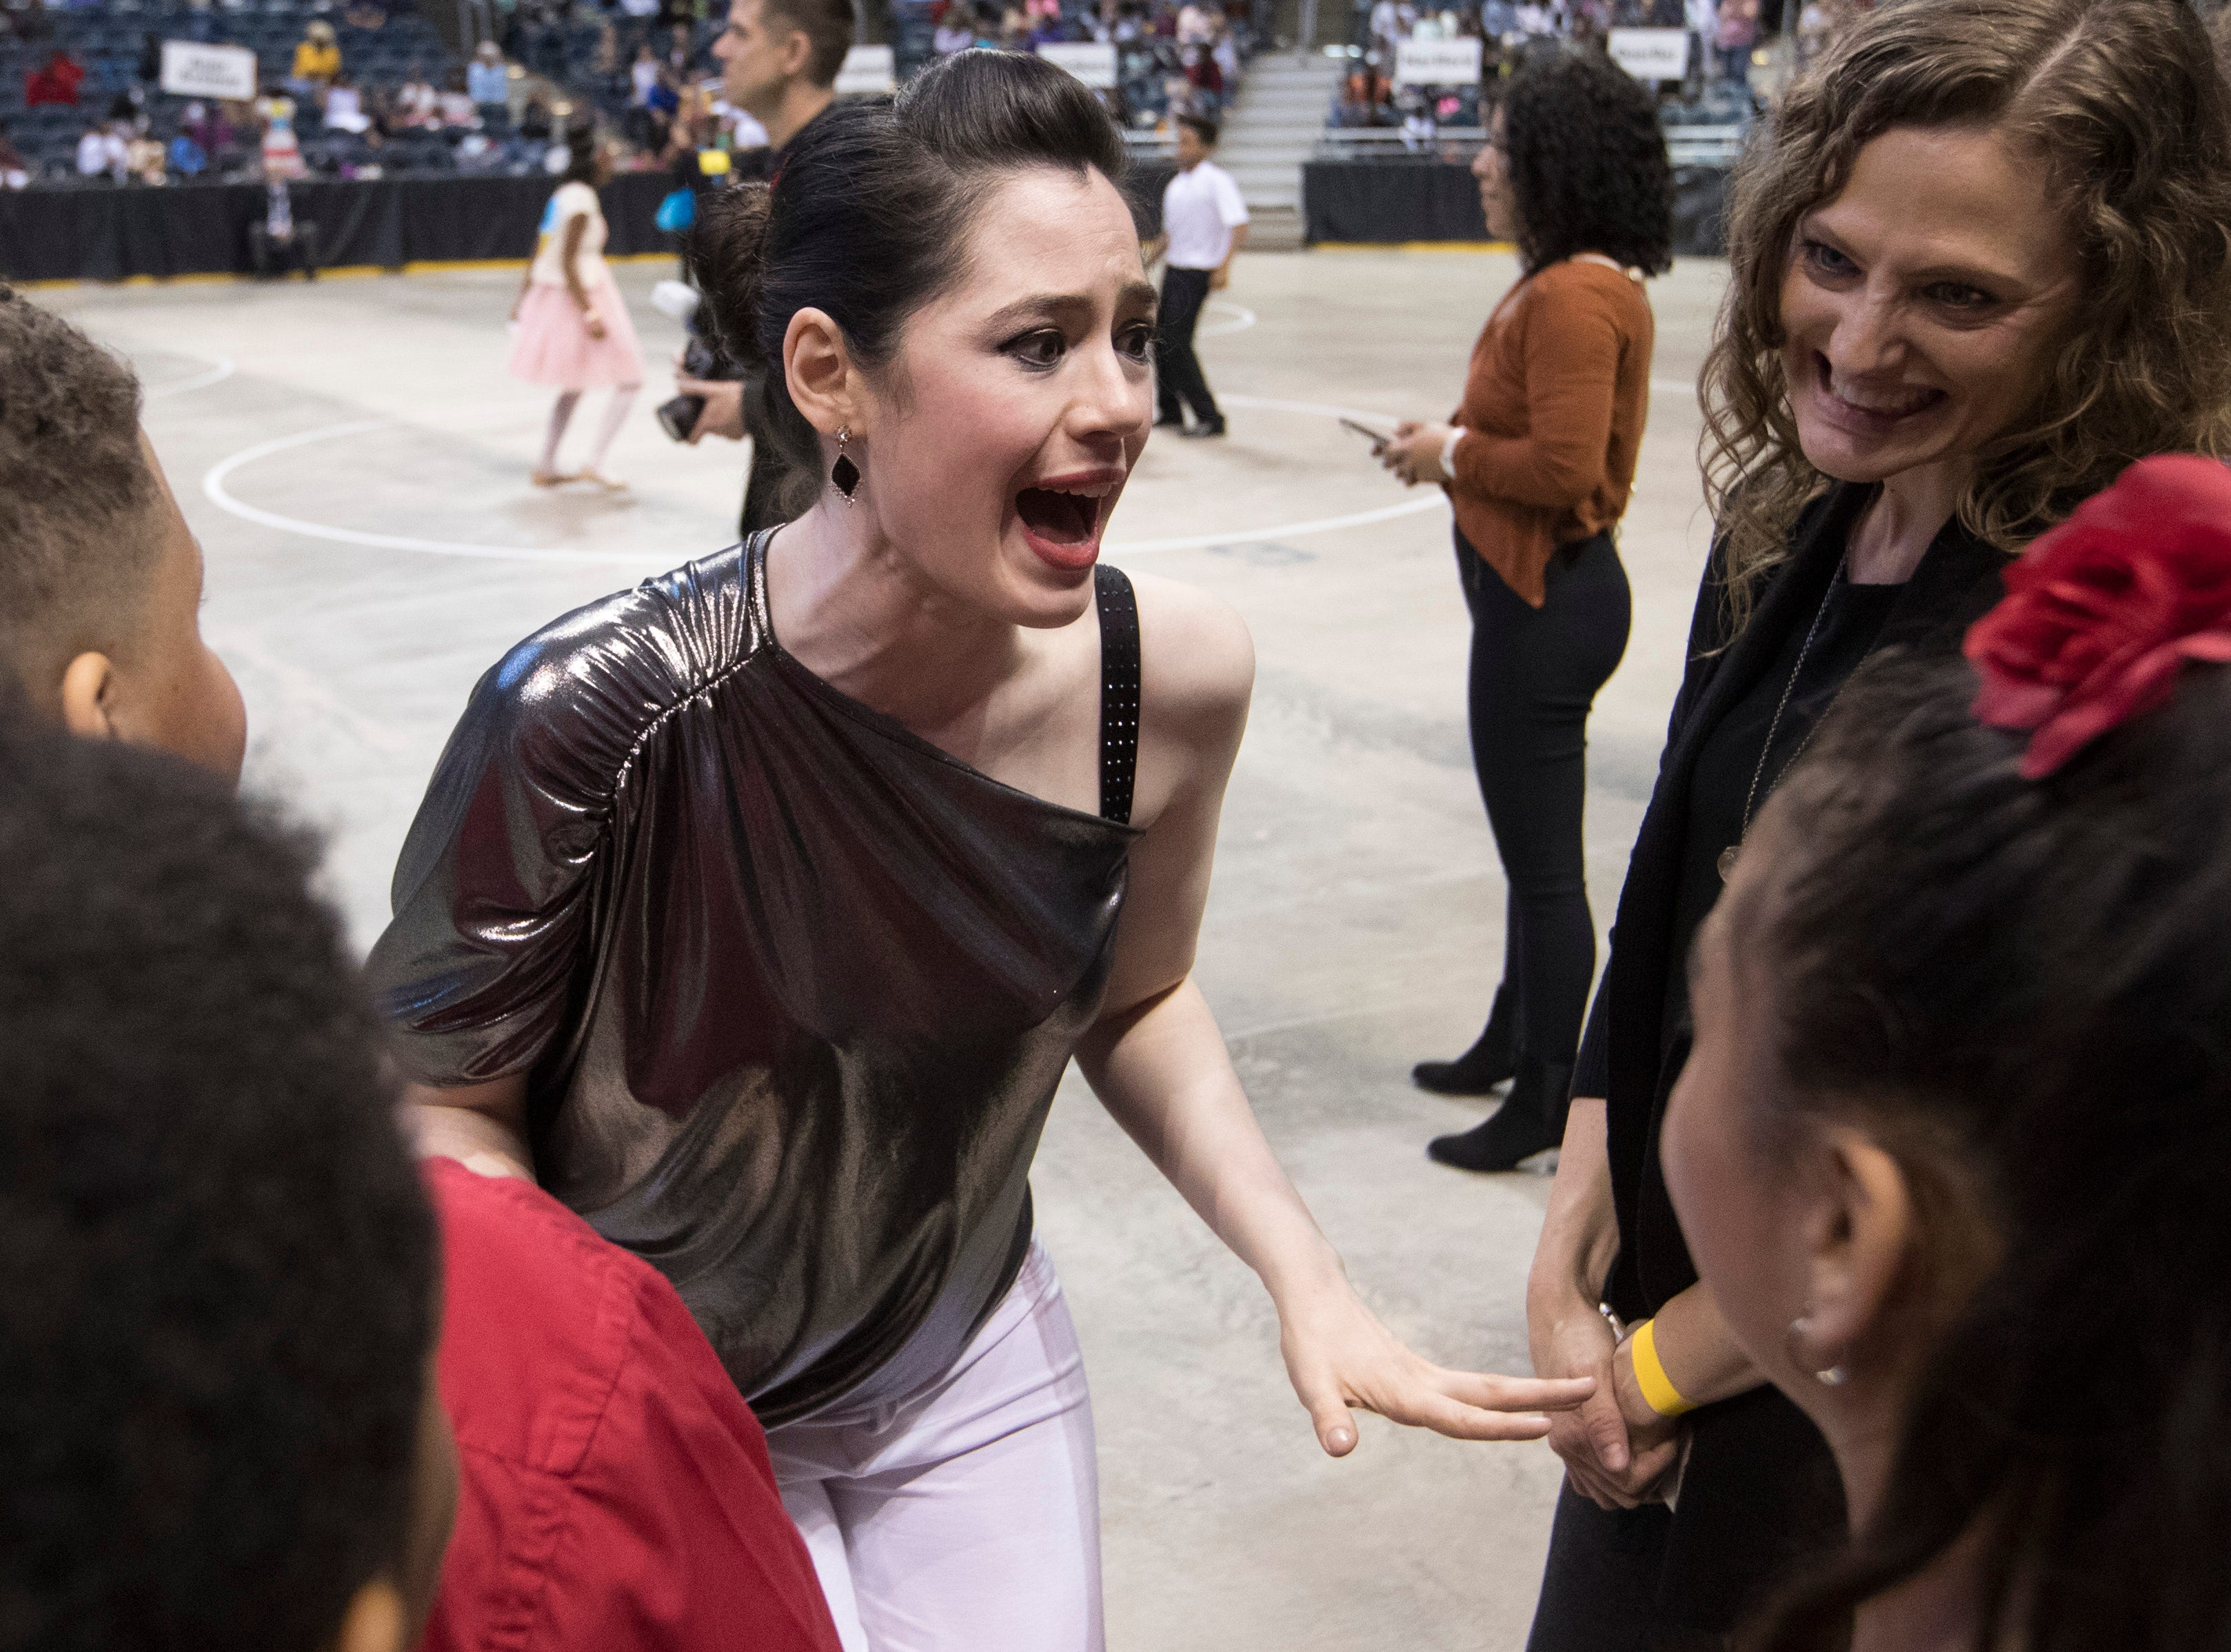 2018: Danceworks teacher Betsy Guerrero shares words of encouragement before student take to the floor during the 12th annual  Danceworks Mad Hot Ballroom and Tap Competition at the BMO Harris Bradley Center.